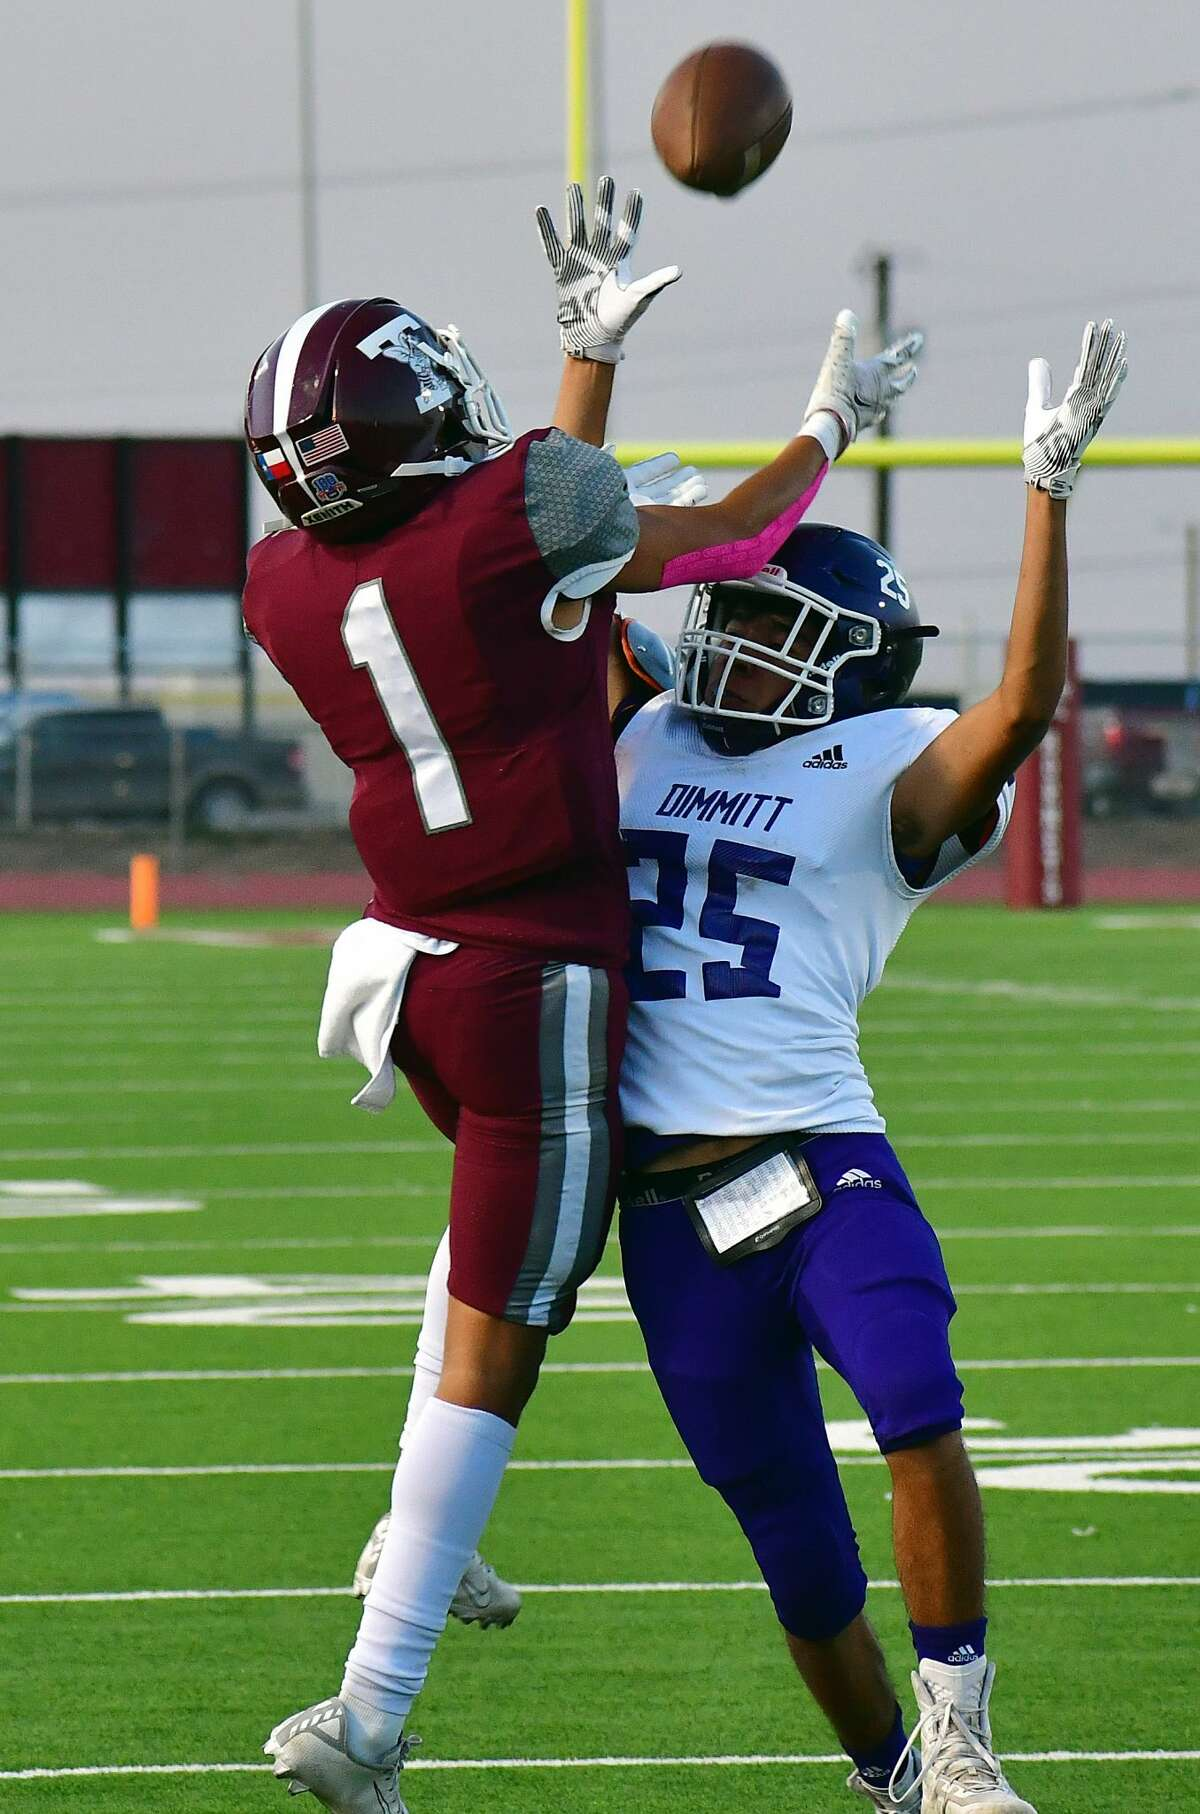 Tulia's Ethan Reyes catches a pass over the head of a Dimmitt defender during their District 3-3A Division II high school football game on Friday, Oct. 2, 2020 in Tulia.